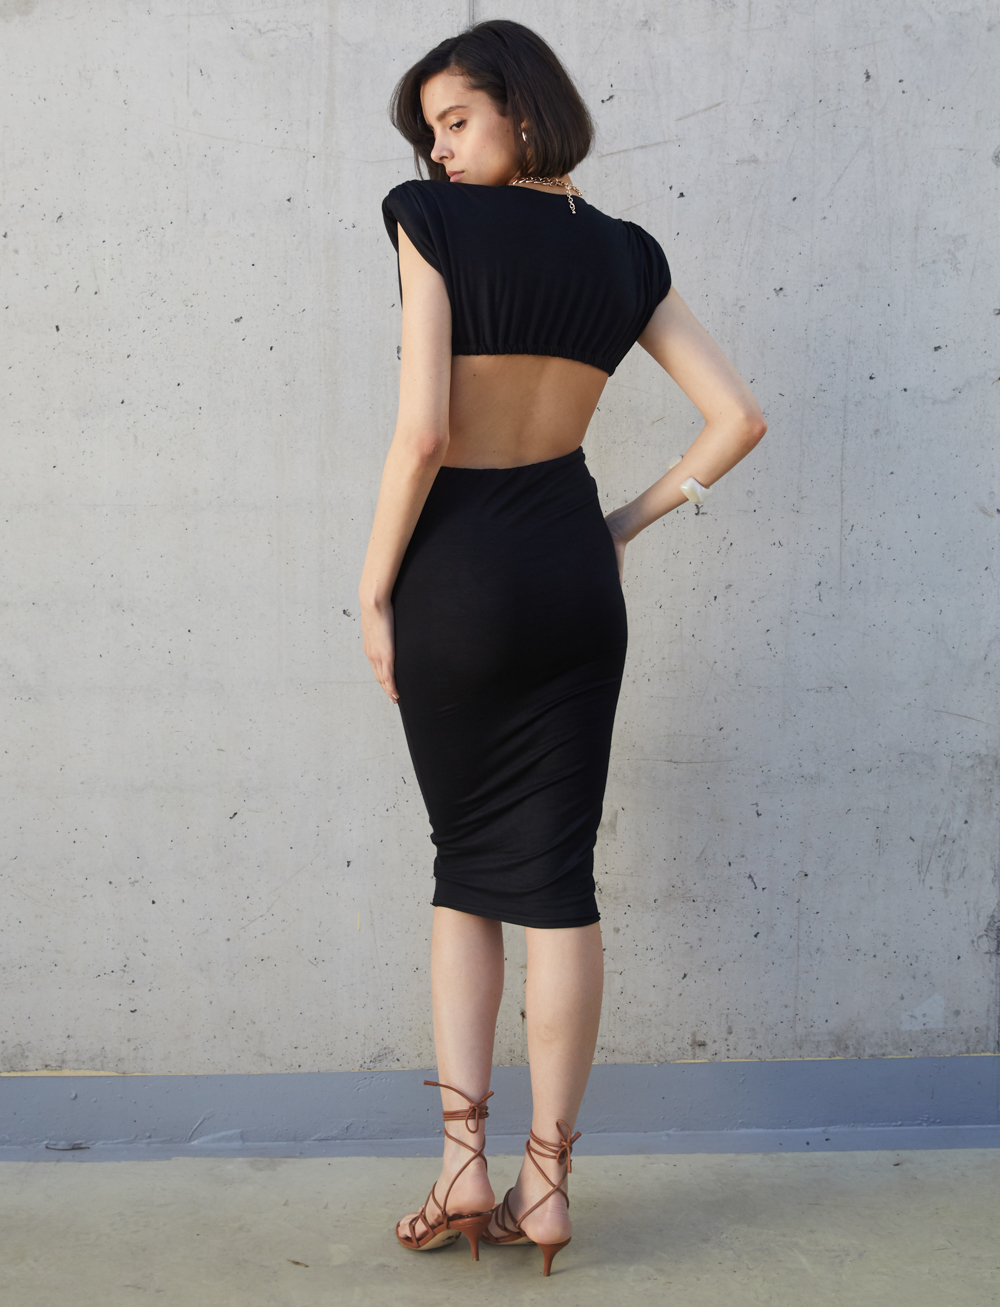 Hotel Cinema Dress by Manurí on curated-crowd.com